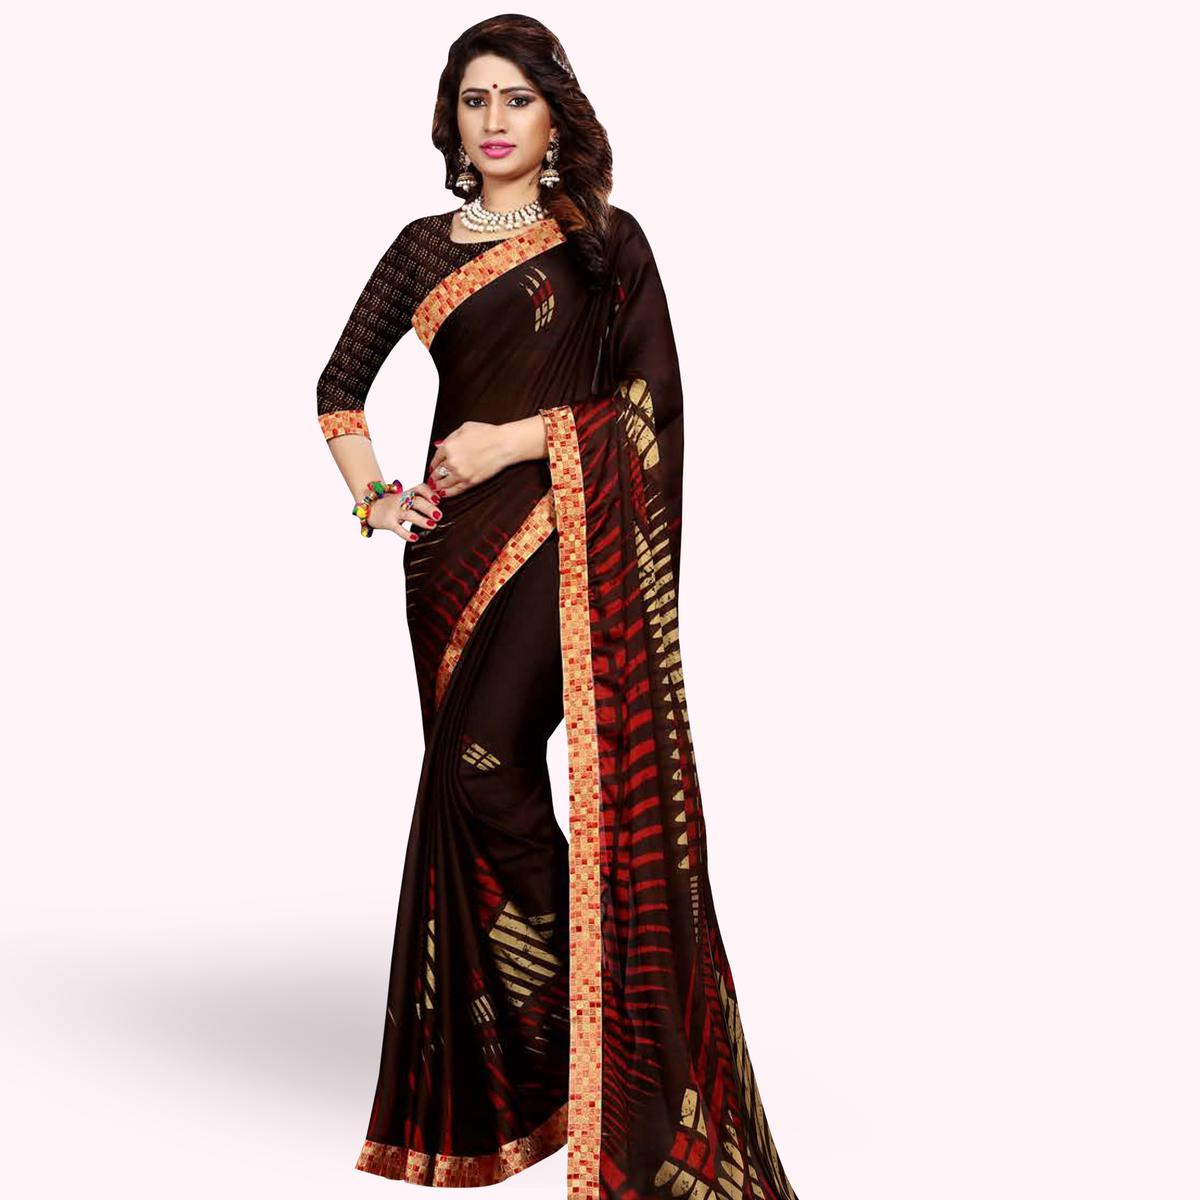 Marvellous Coffee Brown Colored Casual Printed Georgette Saree